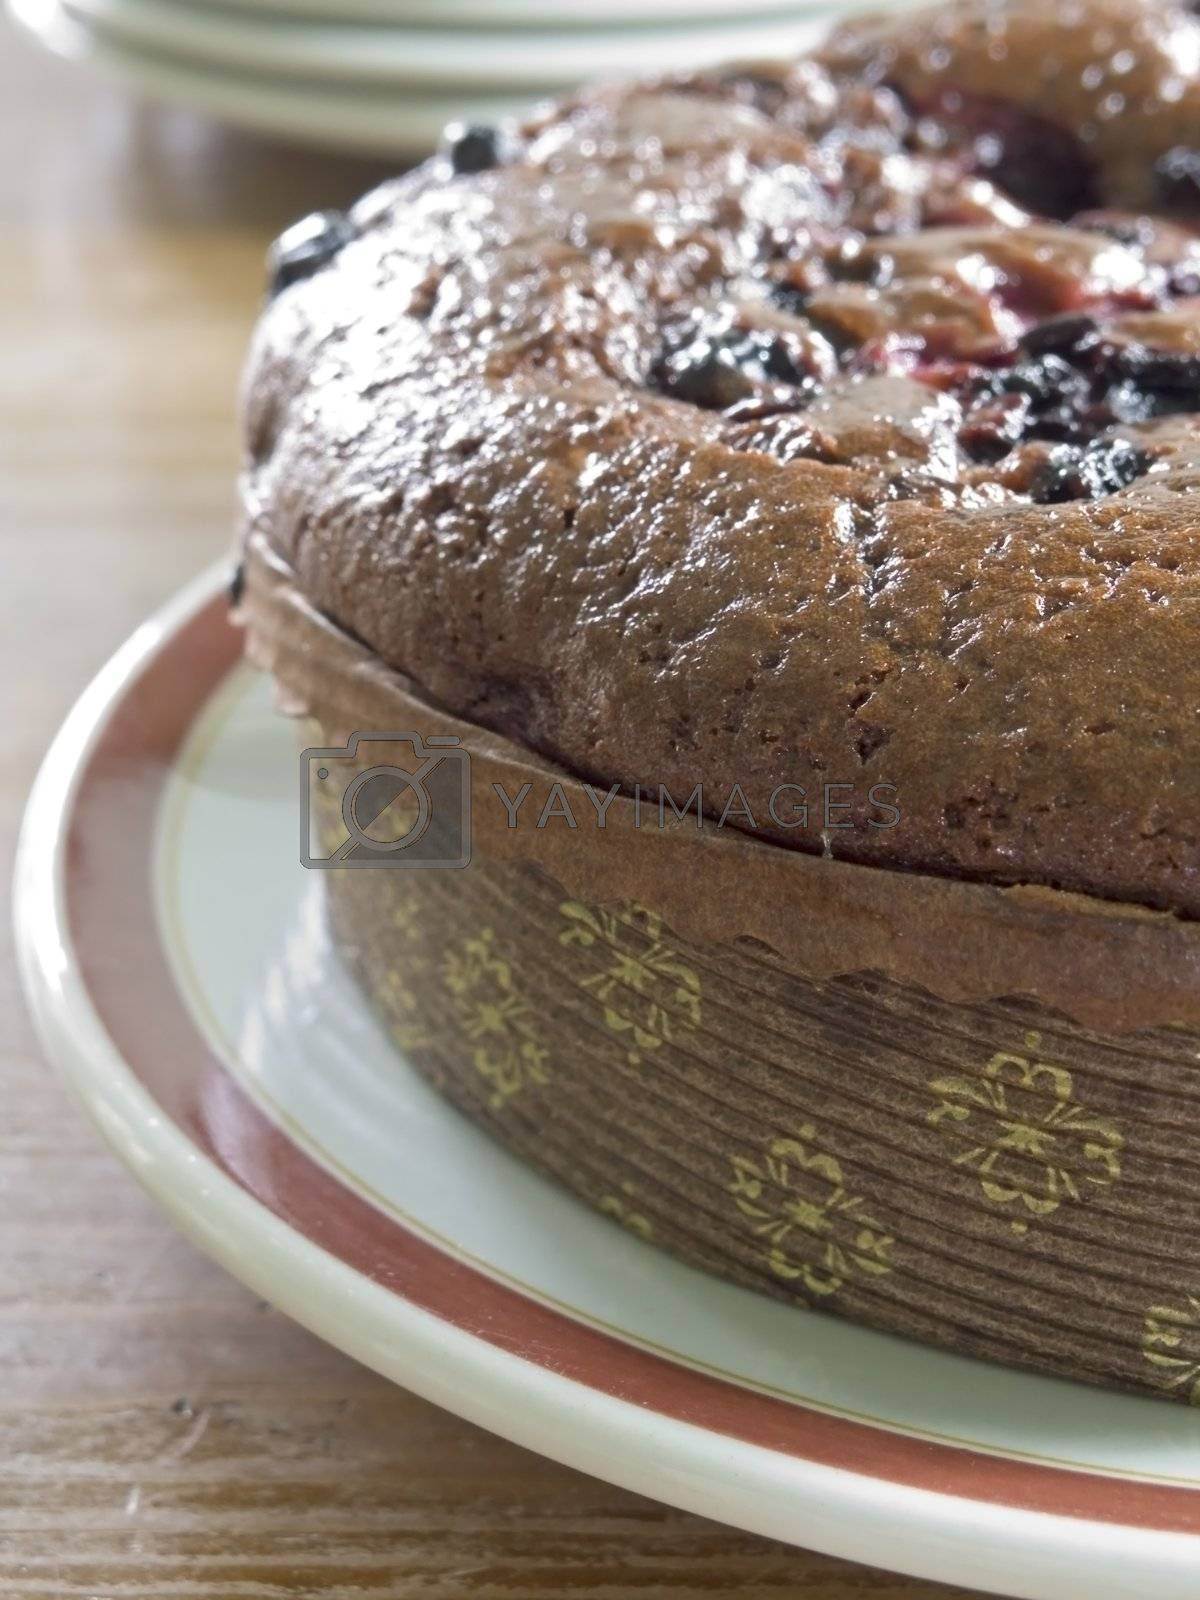 close-up of chocolate cake with berries